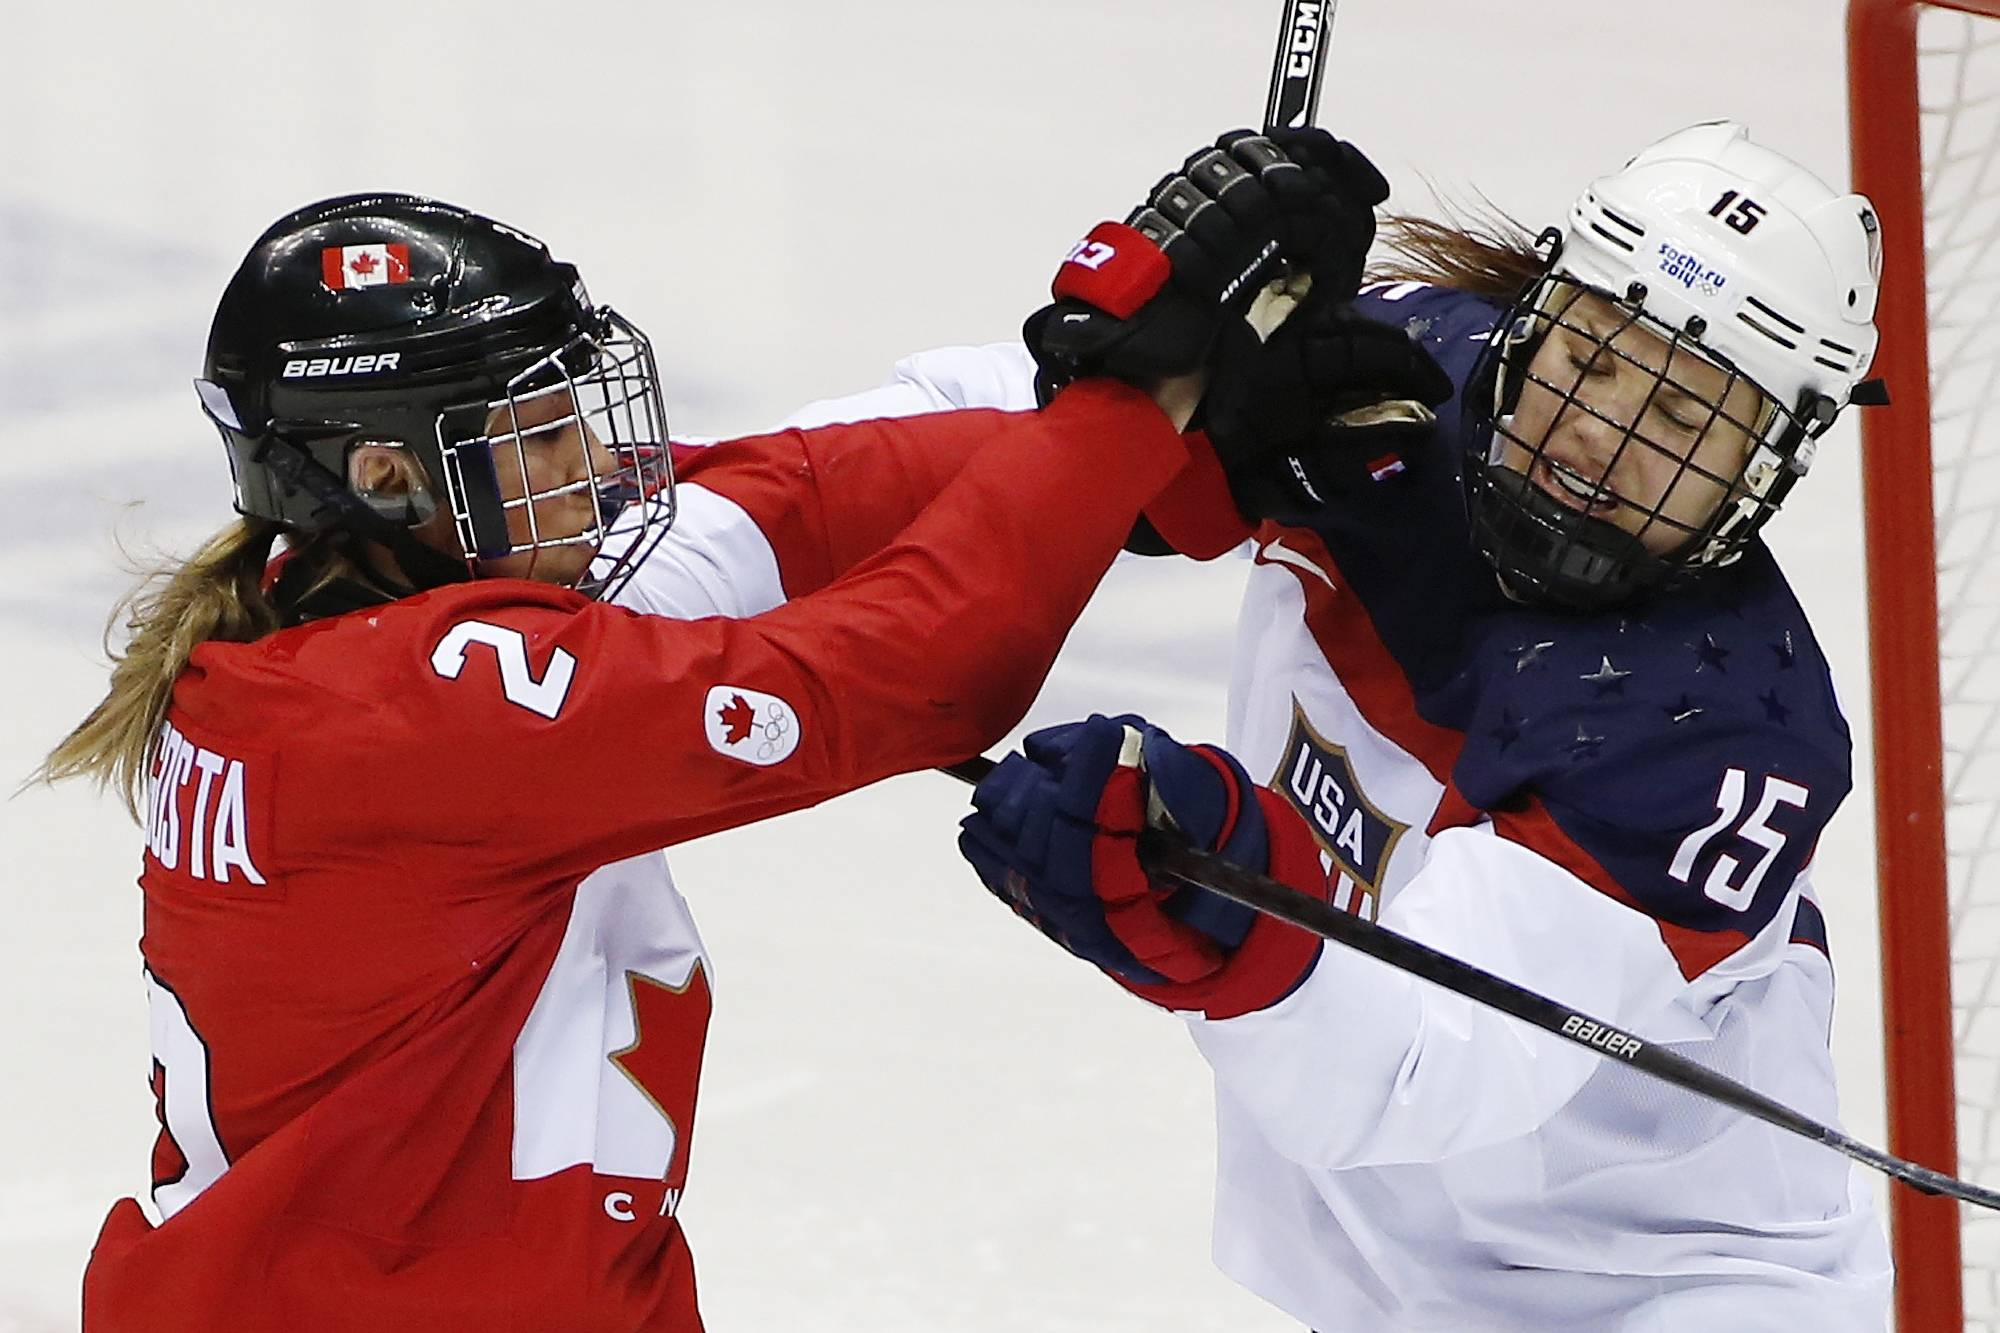 Meghan Agosta-Marciano of Canada (2) and Anne Schleper of the United States (15) mix it up during the second period of the women's gold medal ice hockey game.